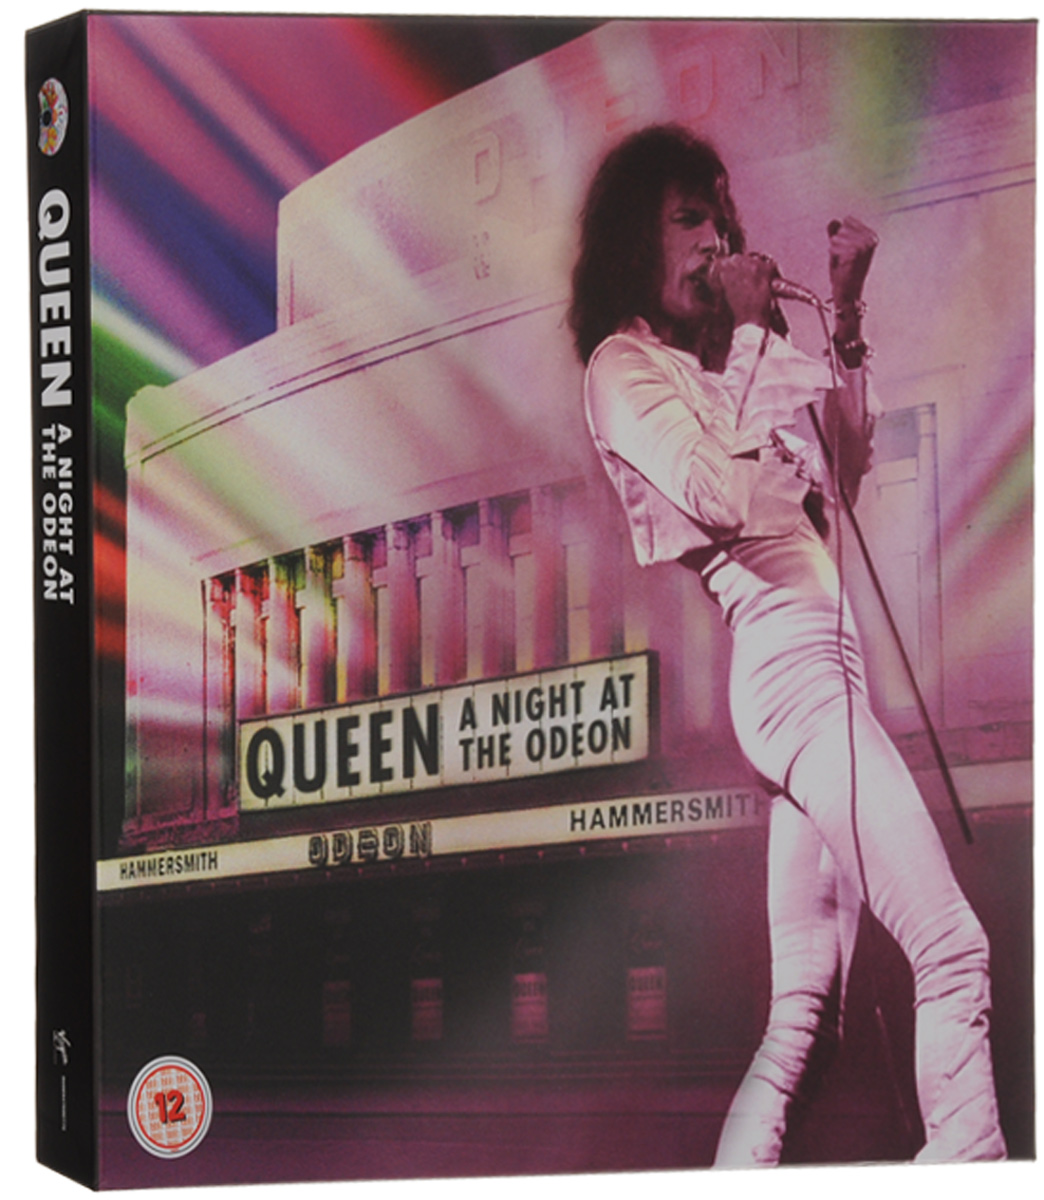 Queen Queen. A Night At The Odeon. Anniversary Limited Edition (CD + LP + DVD + Blu-ray) carl perkins & friends blue suede shoes a rockabilly session 30th anniversary edition cd dvd